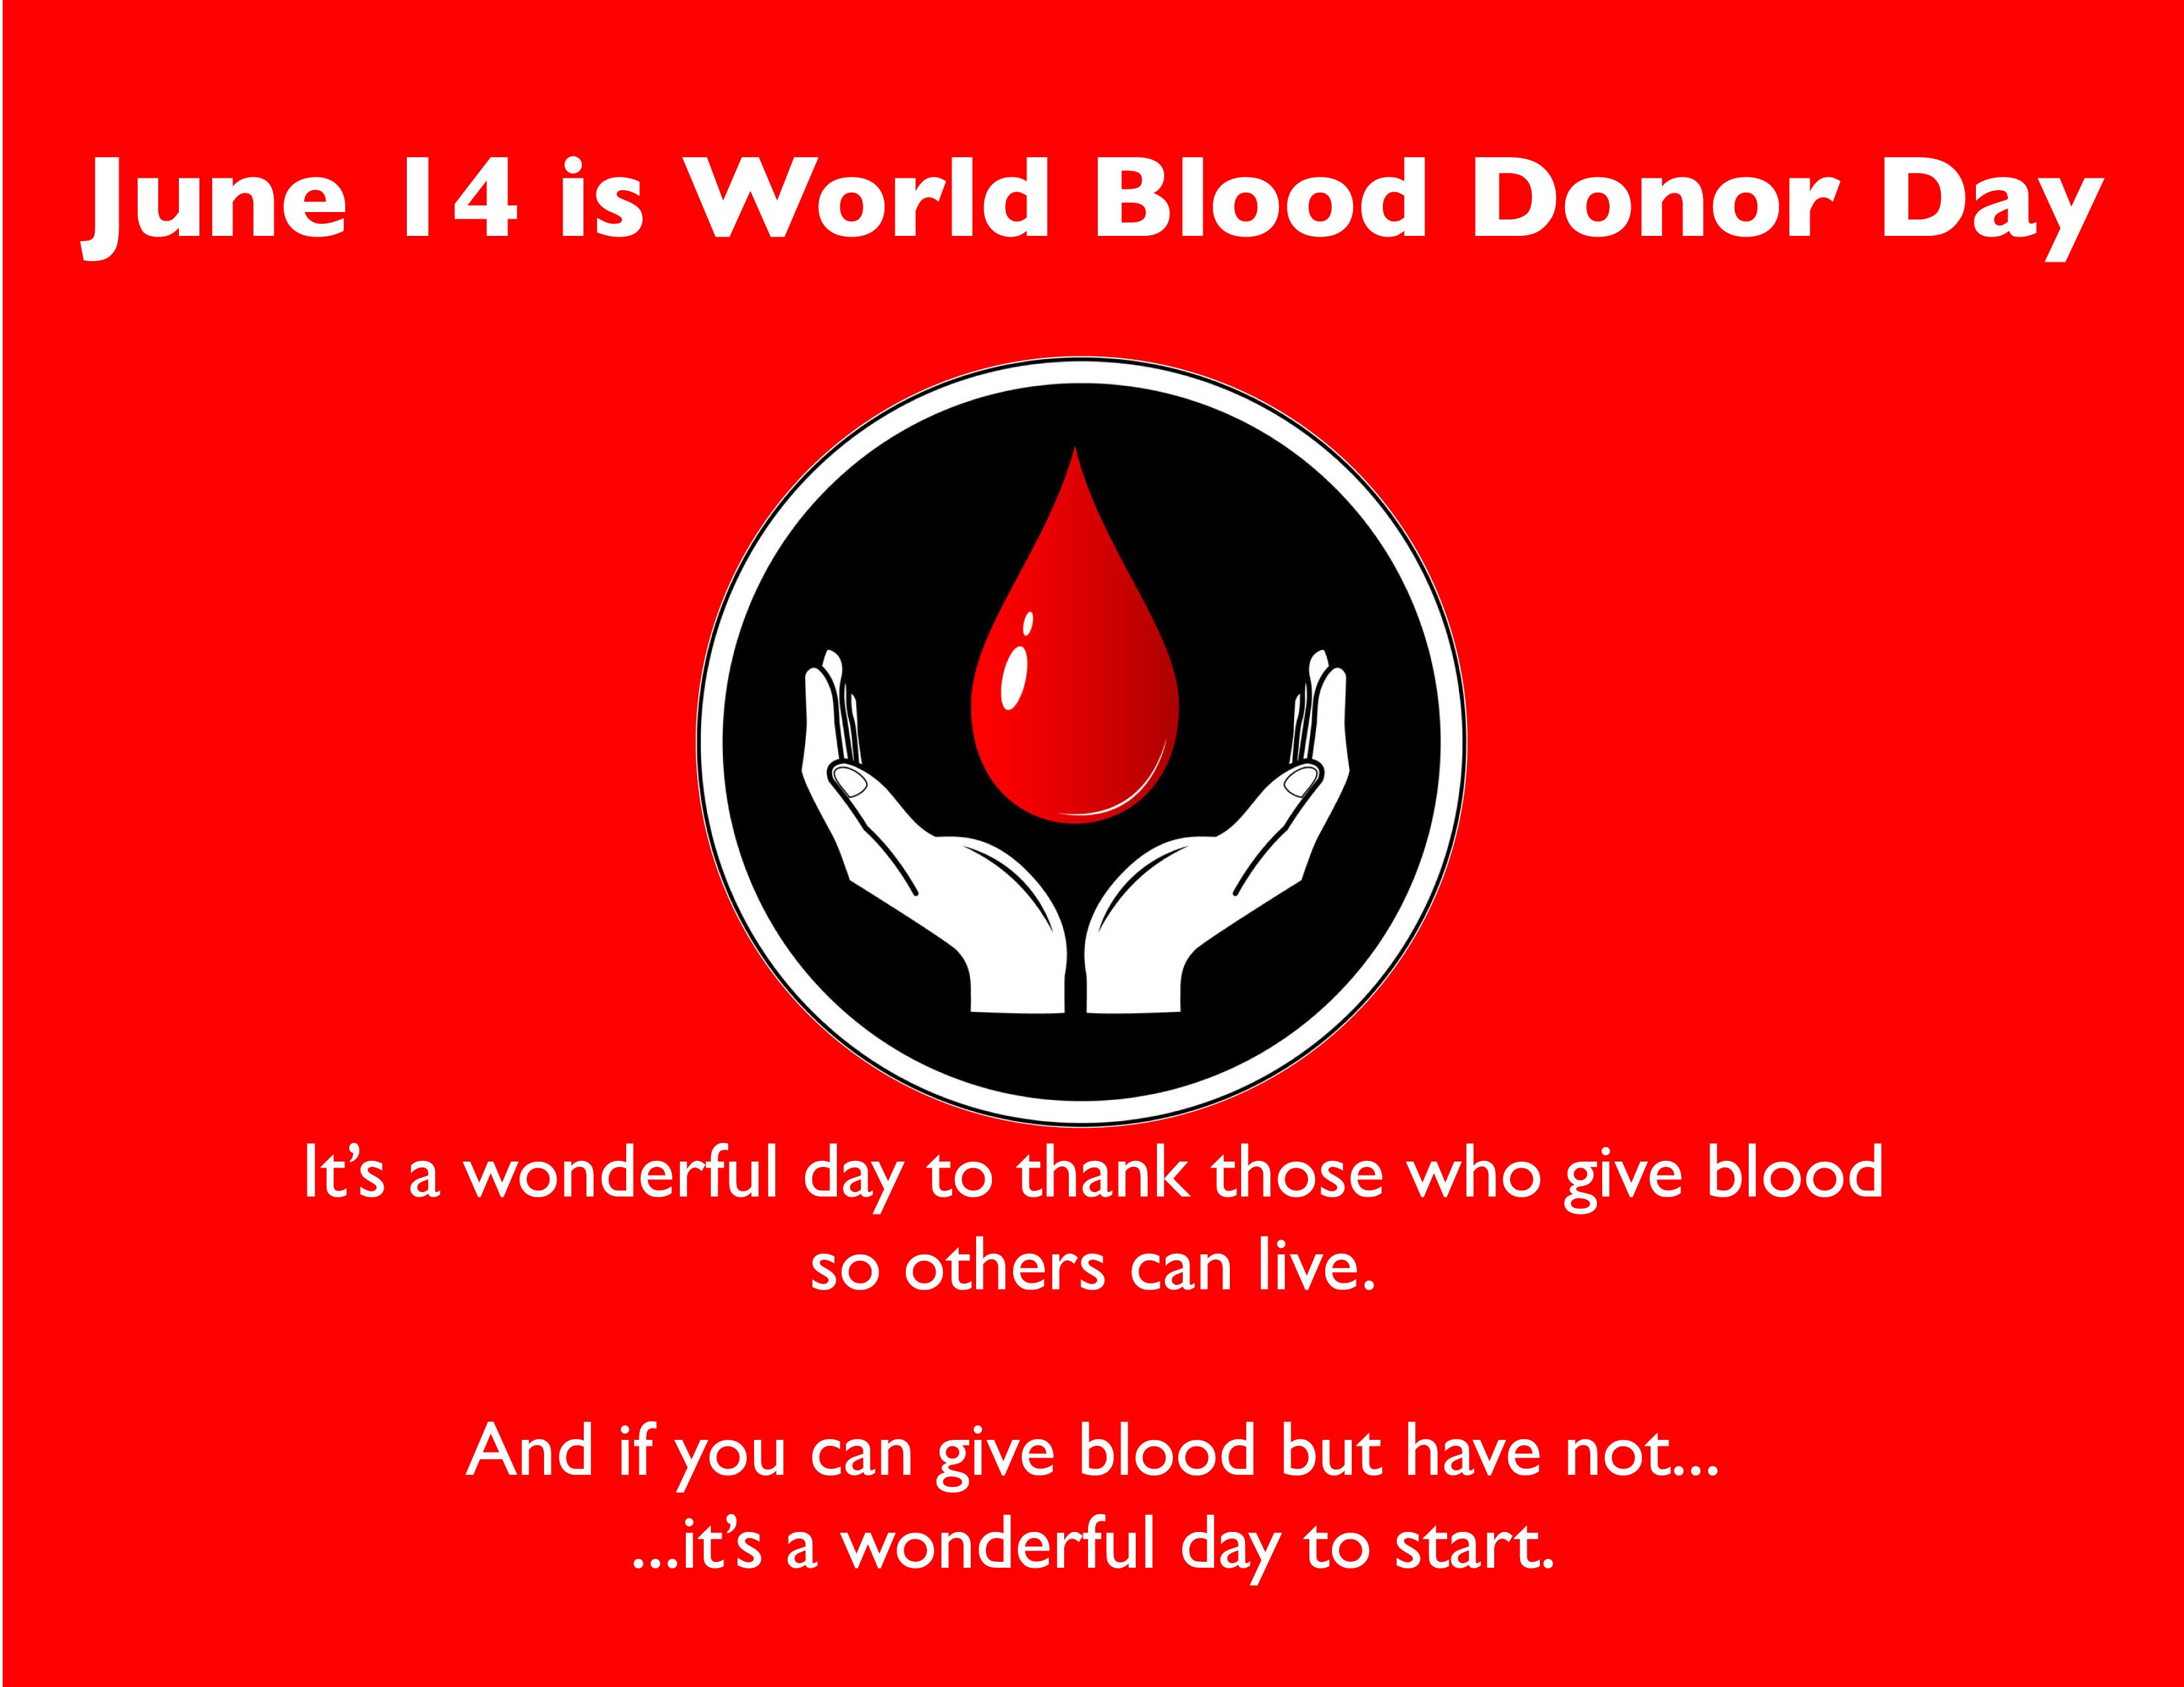 World Blood Donor Day Quotes Slogans Sayings Images Whatsapp 3296x2546